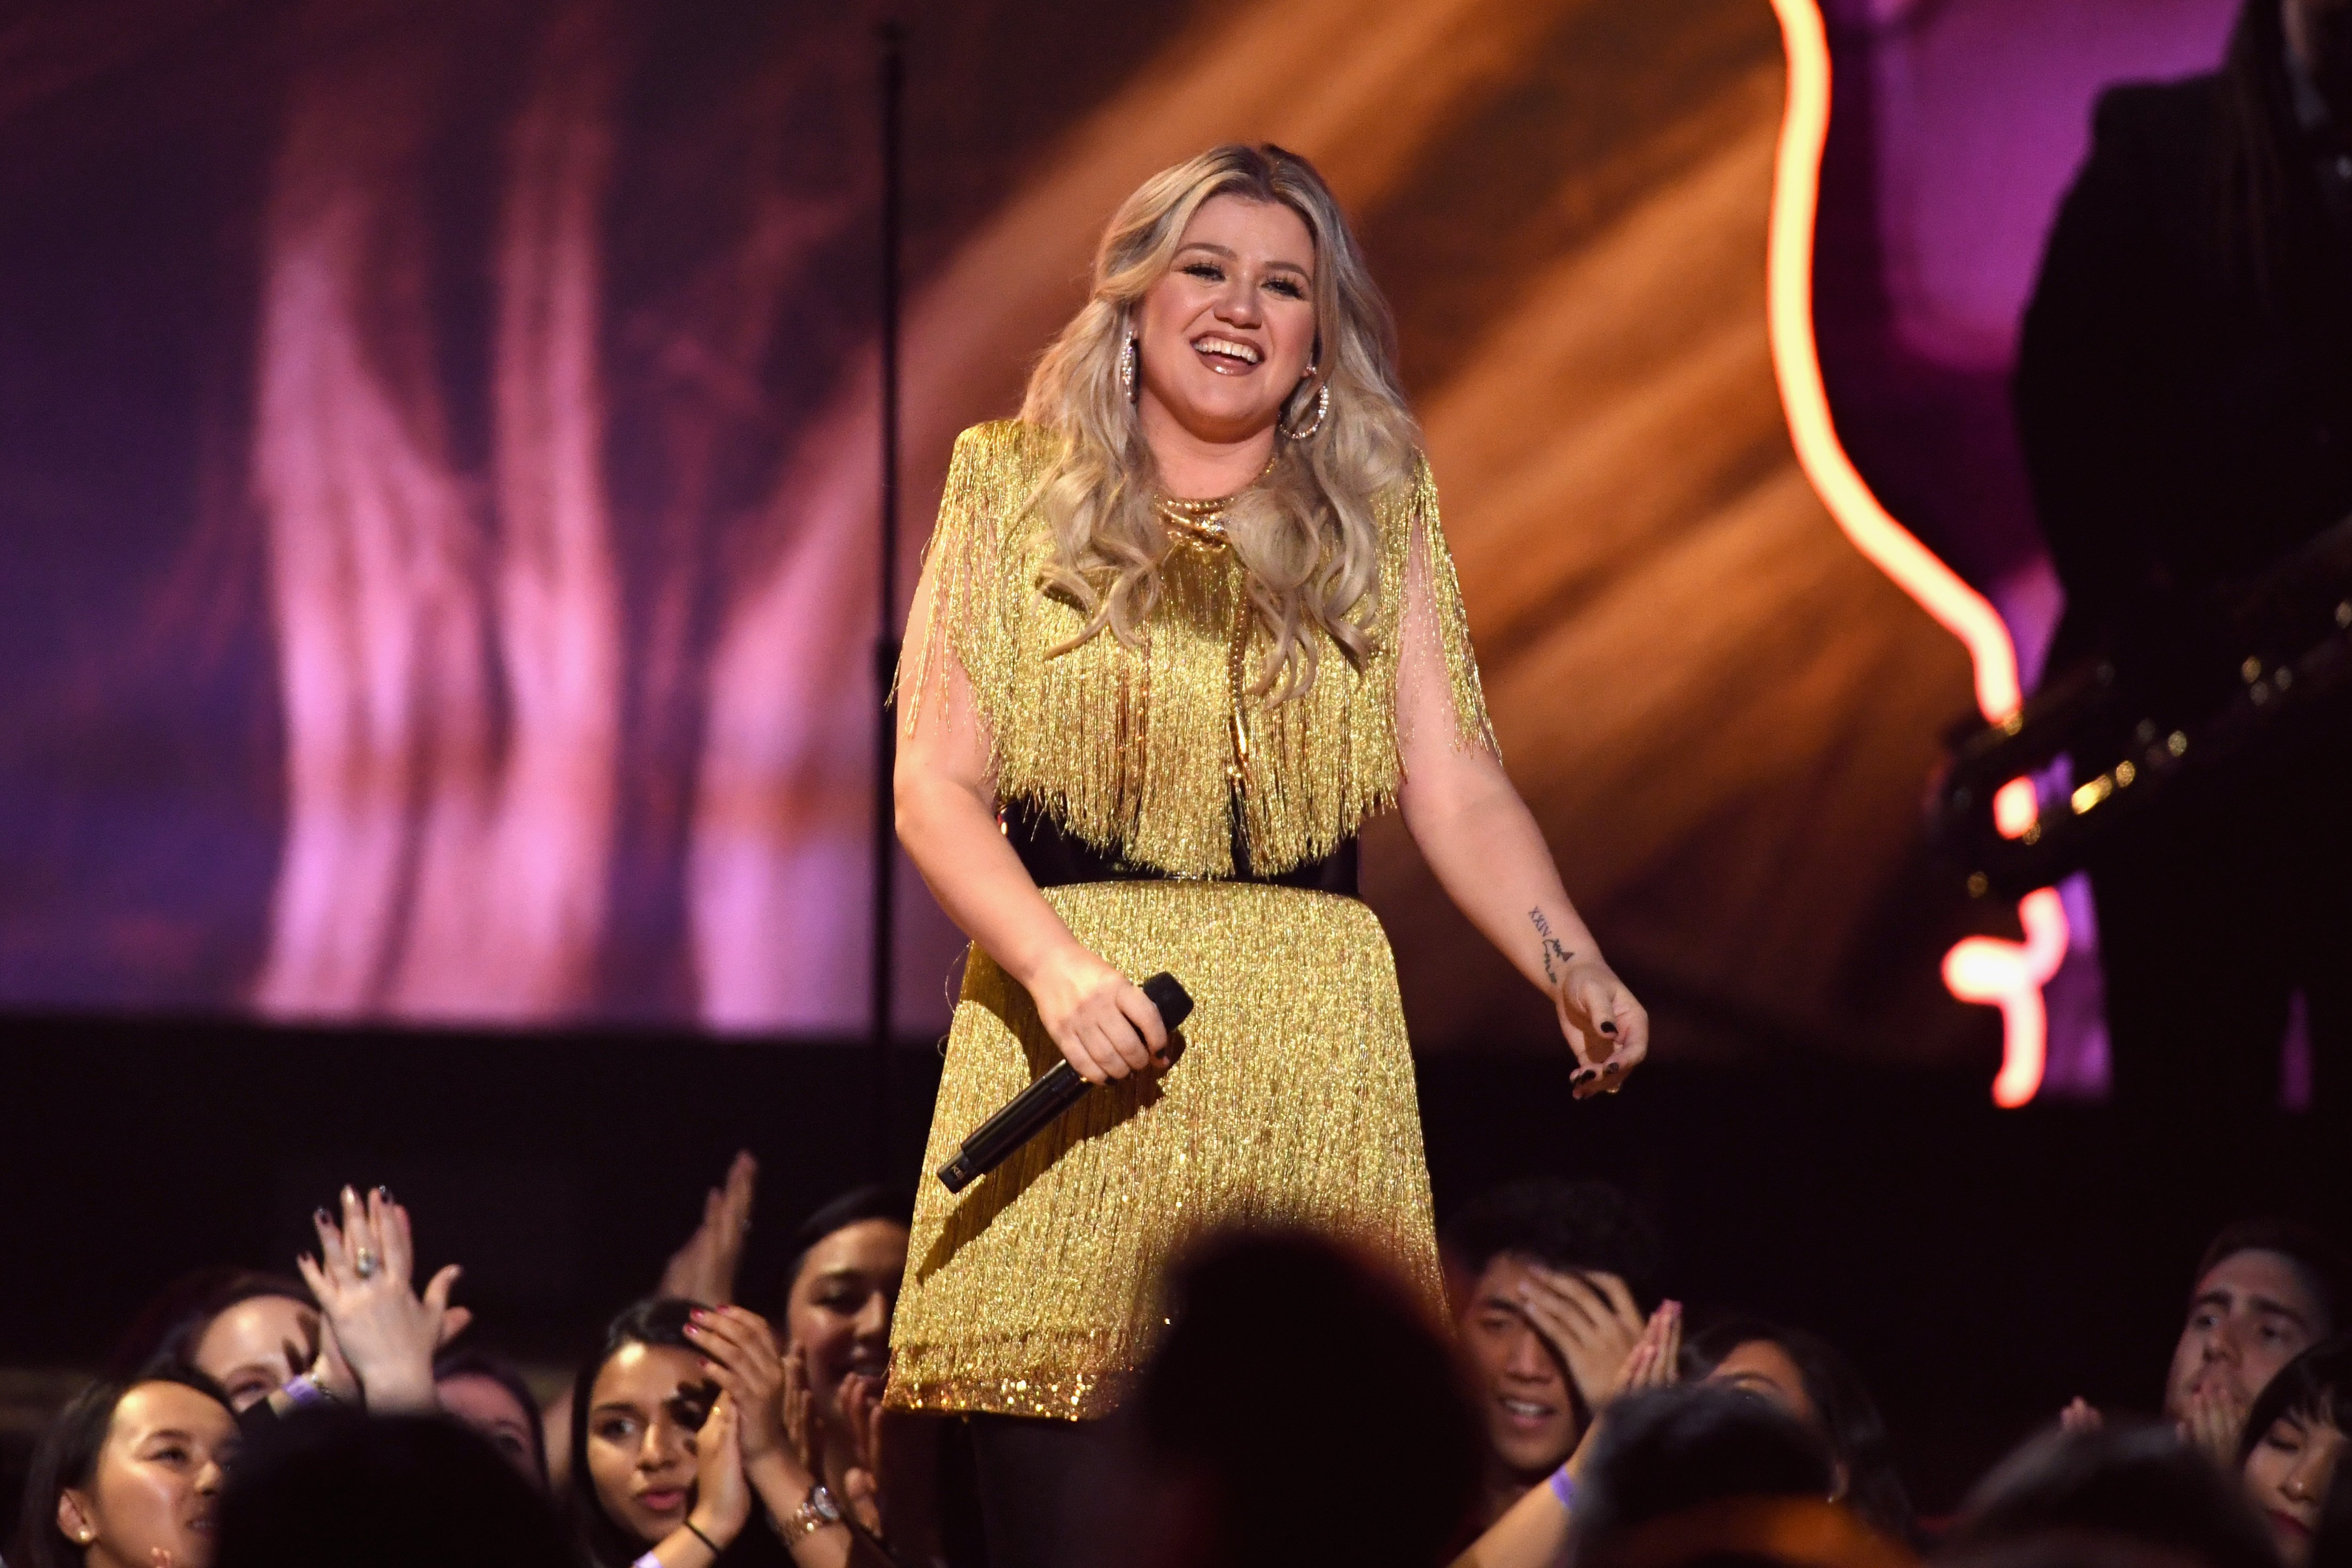 Kelly Clarkson performs at the Billboard Music Awards in Las Vegas, Nevada on May 20, 2018   Photo: Getty Images